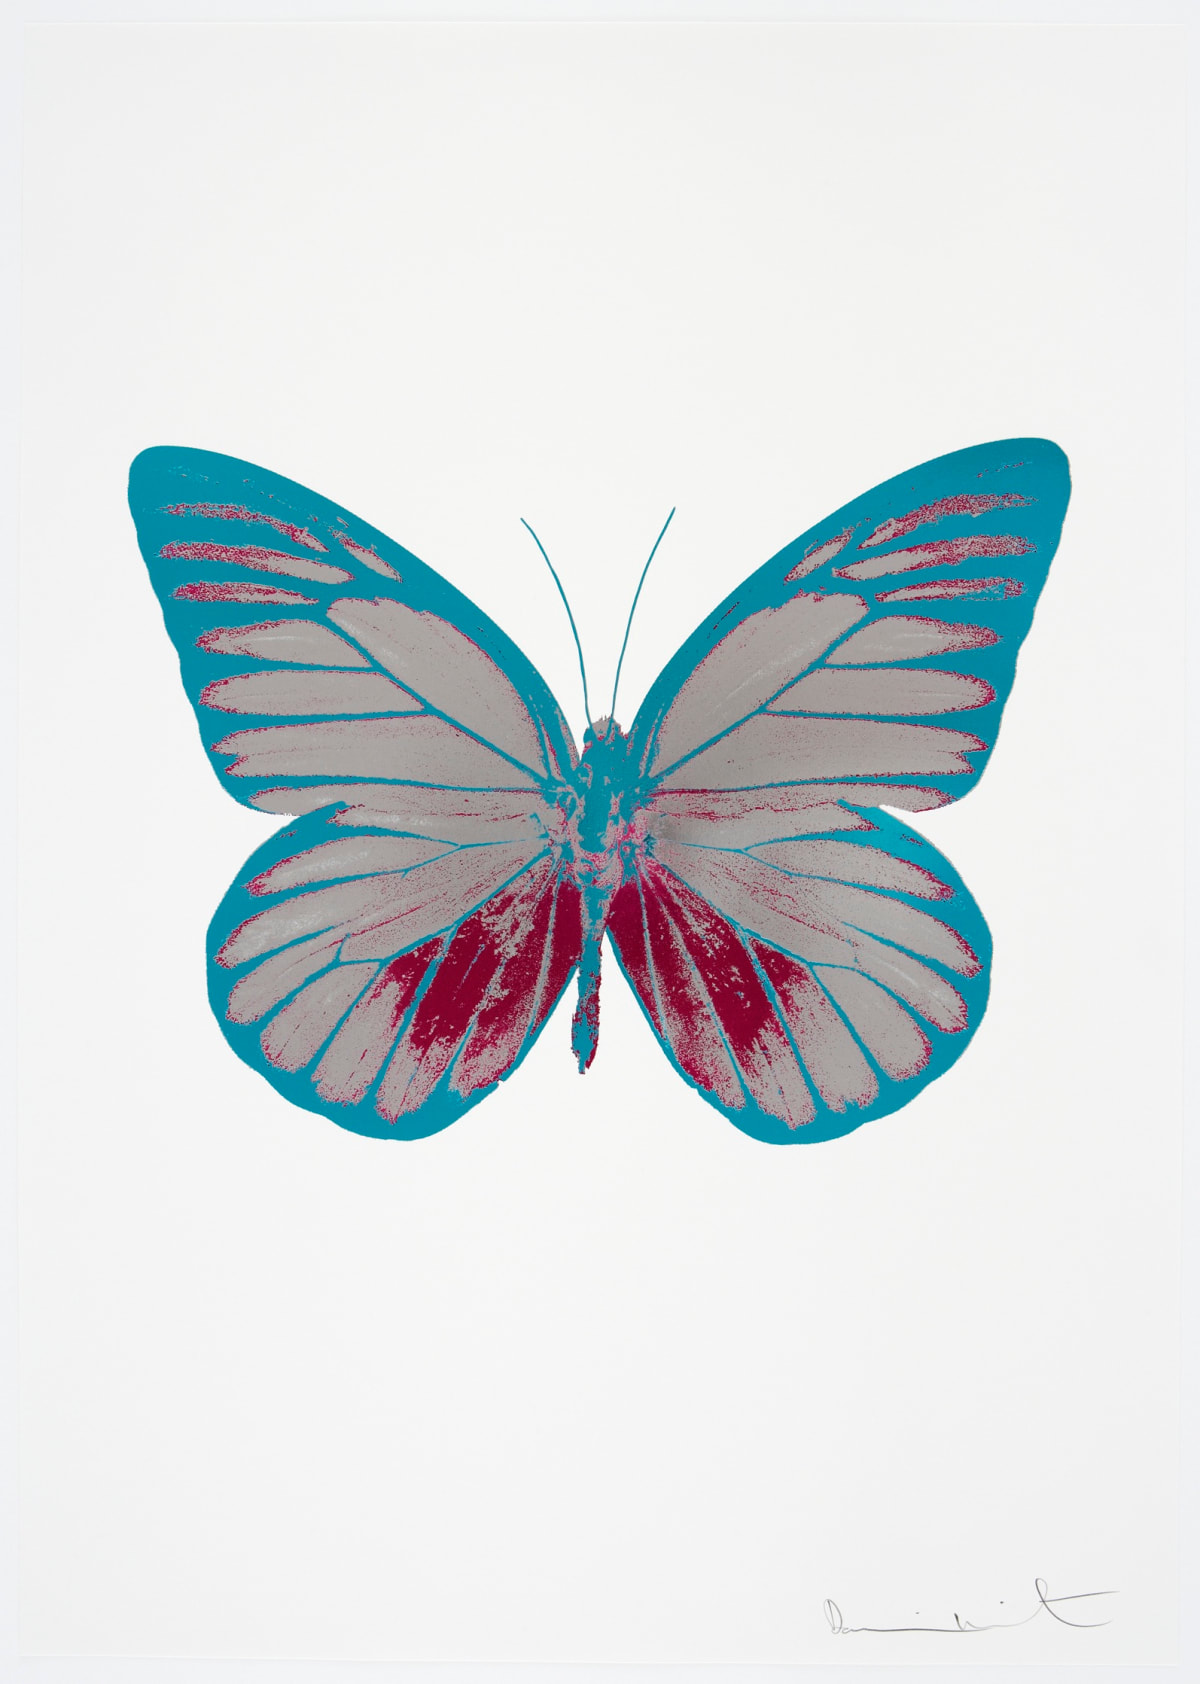 Damien Hirst The Souls I - Silver Gloss/Fuchsia Pink/Topaz, 2010 3 colour foil block on 300gsm Arches 88 archival paper. Signed and numbered. Published by Paul Stolper and Other Criteria 72 x 51cm OC7738 / 659-1 Edition of 15